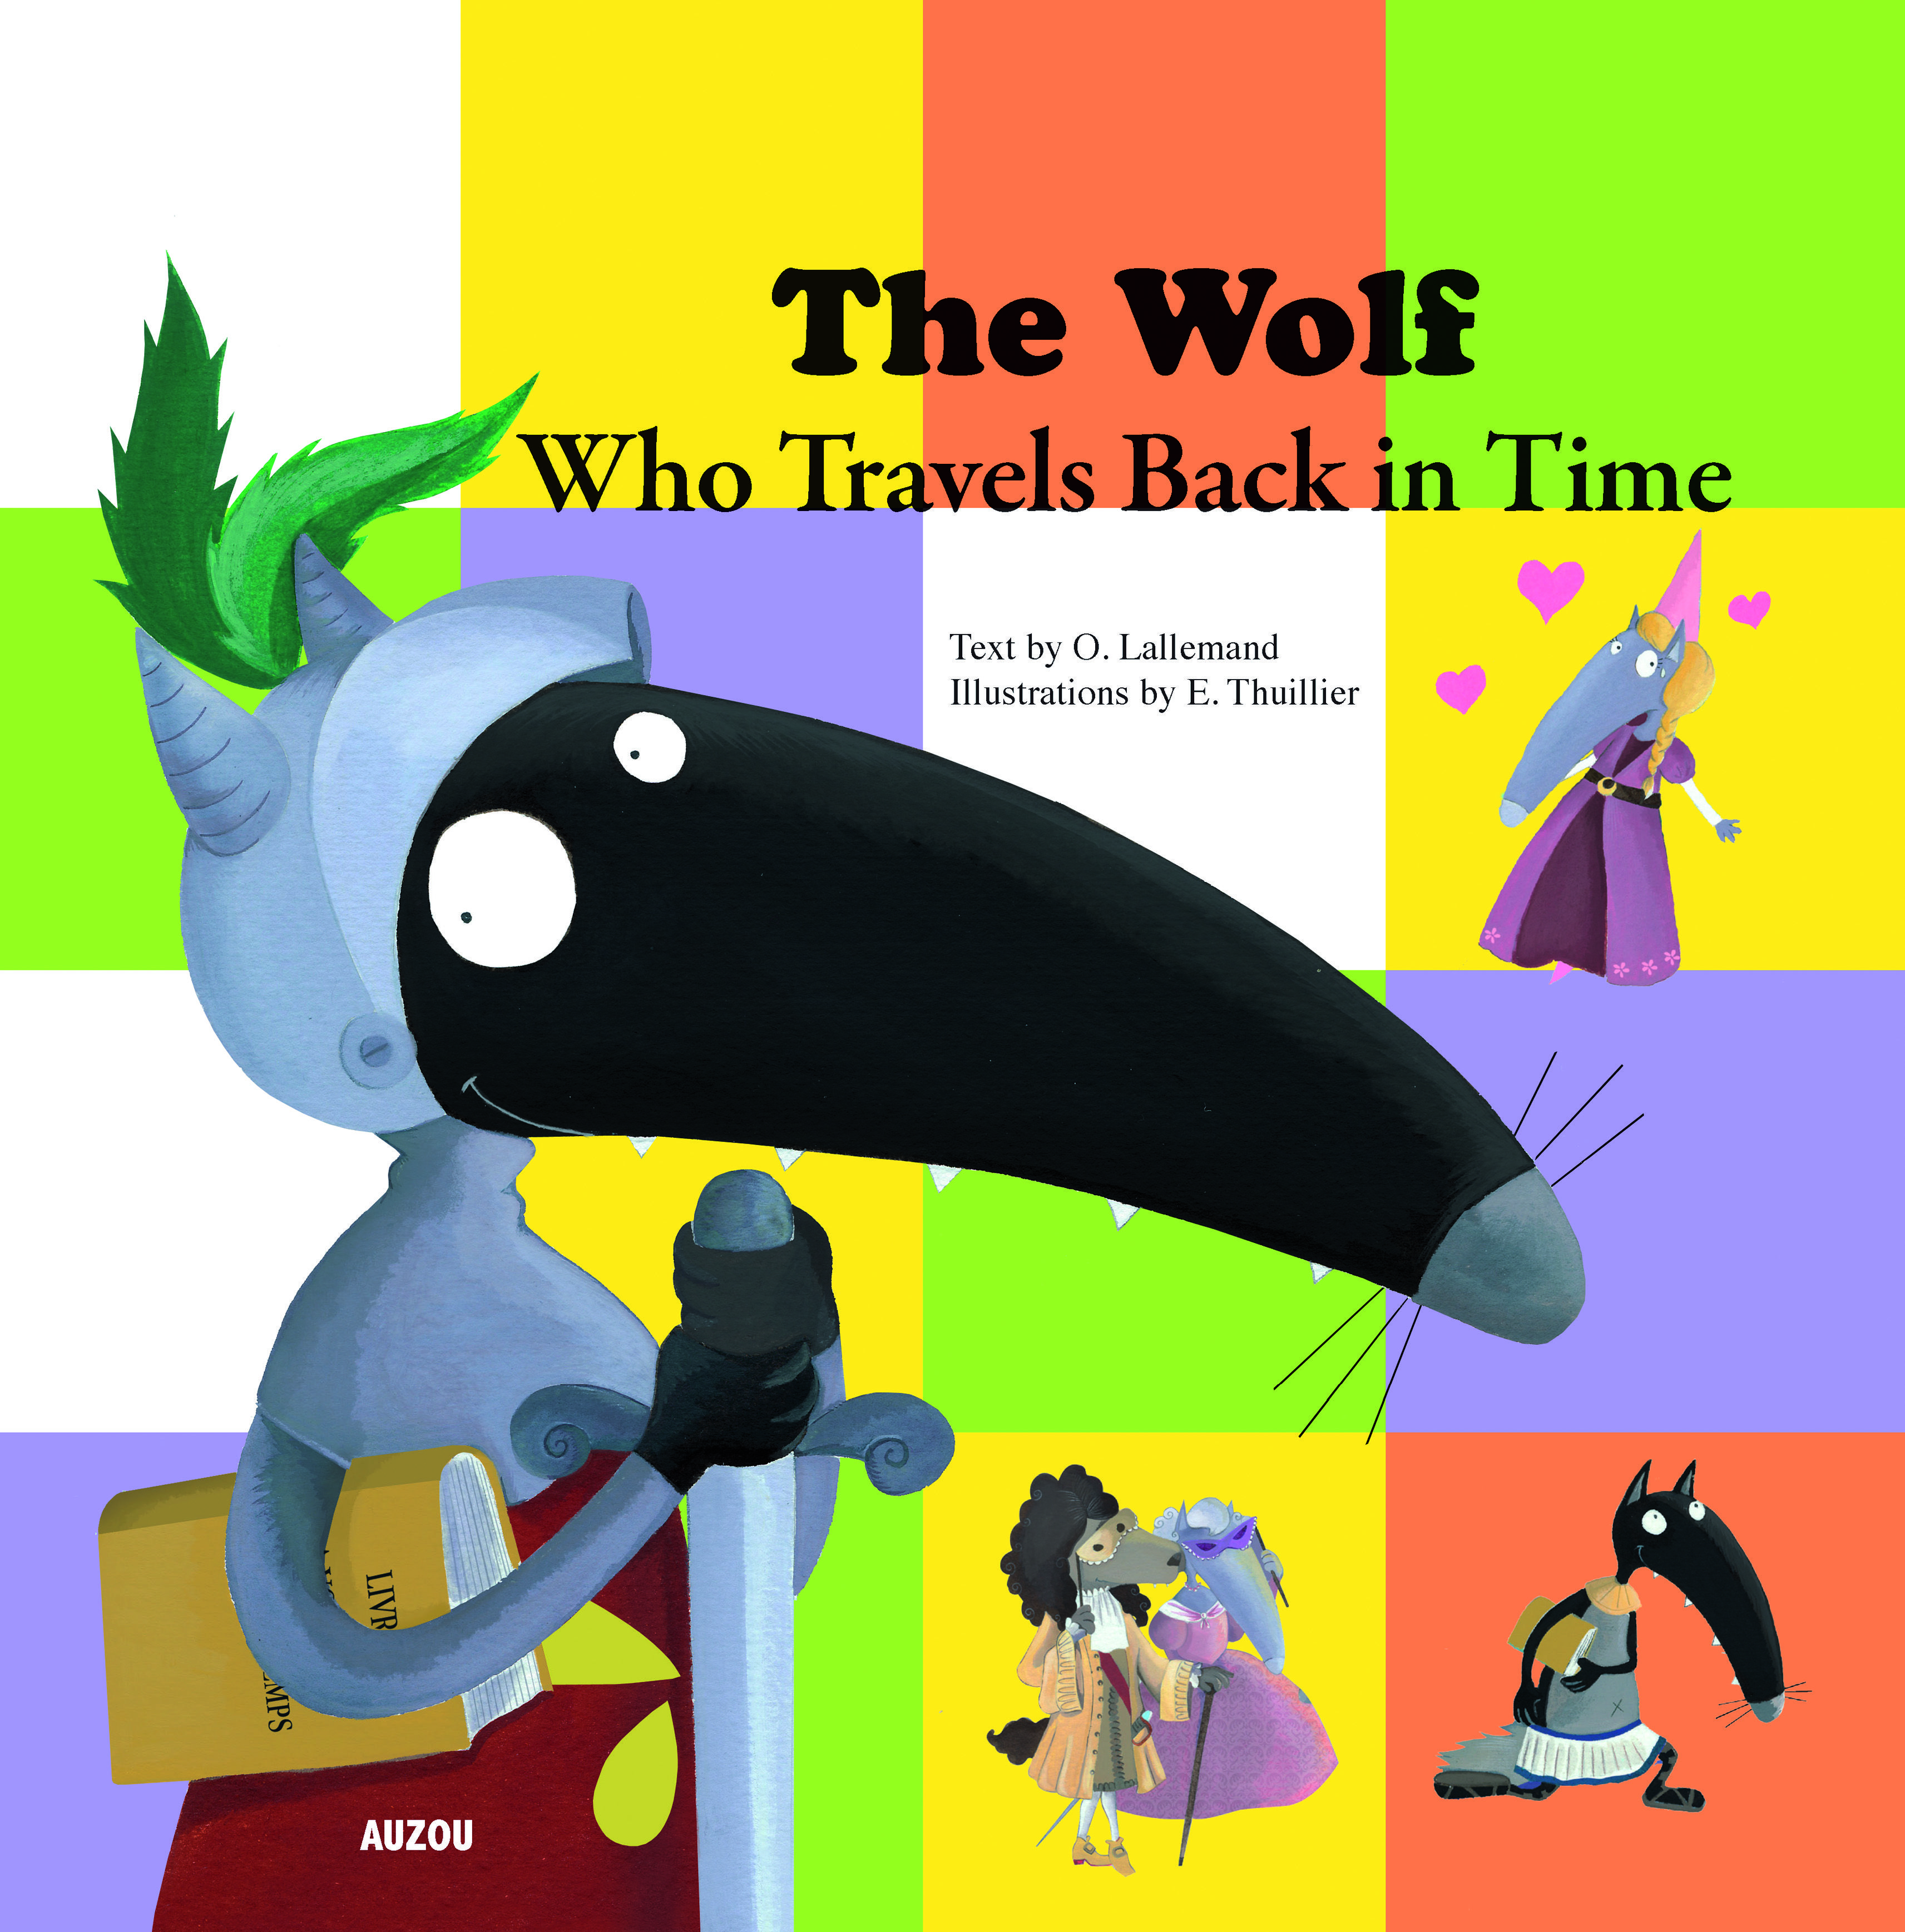 #wolf -  One day, the wolf found an amazing book — it sent him on a journey back in time! In a flash, he finds himself face to face with dinosaurs, prehistoric men and even Julius Caesar. His incredible adventure turns out to be full of surprises! Who will he meet next?